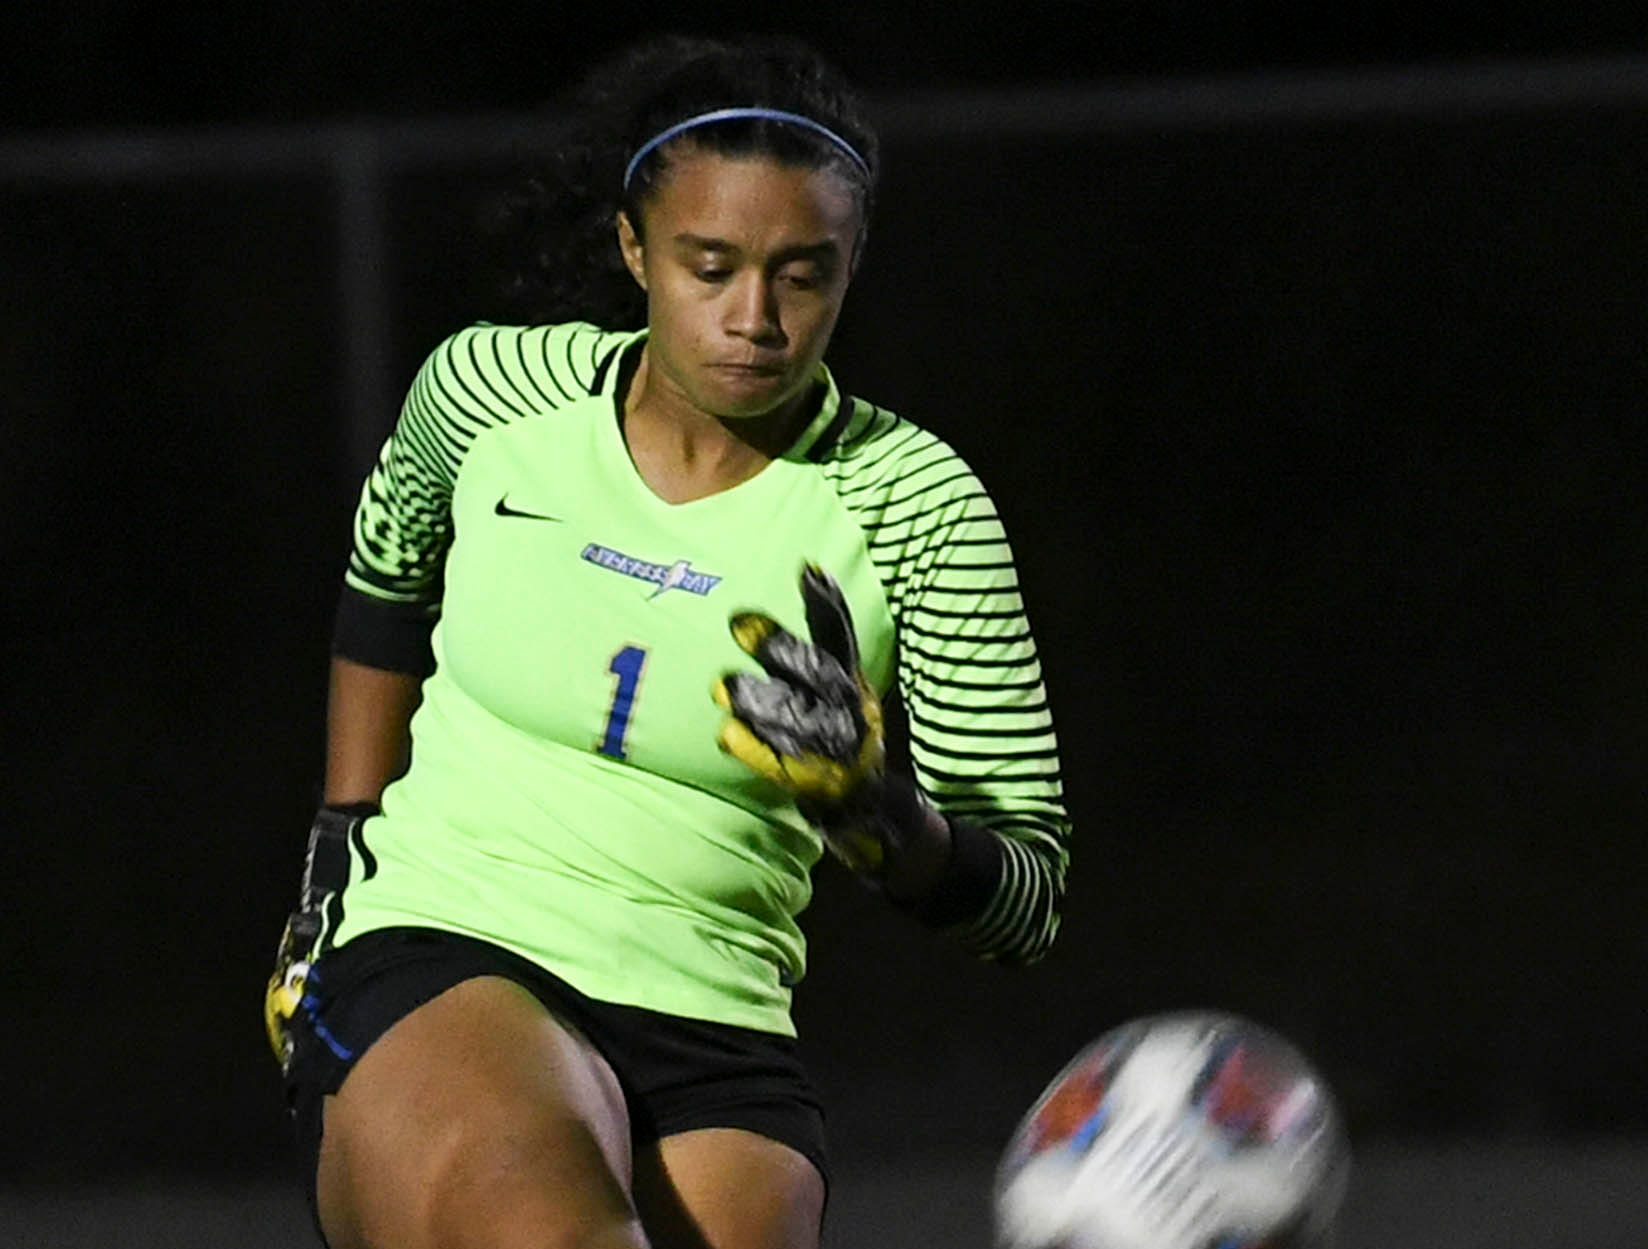 Cypress Bay goalkeeper Milan Dewkinandan puts the ball in play during Thursday's game in Melbourne